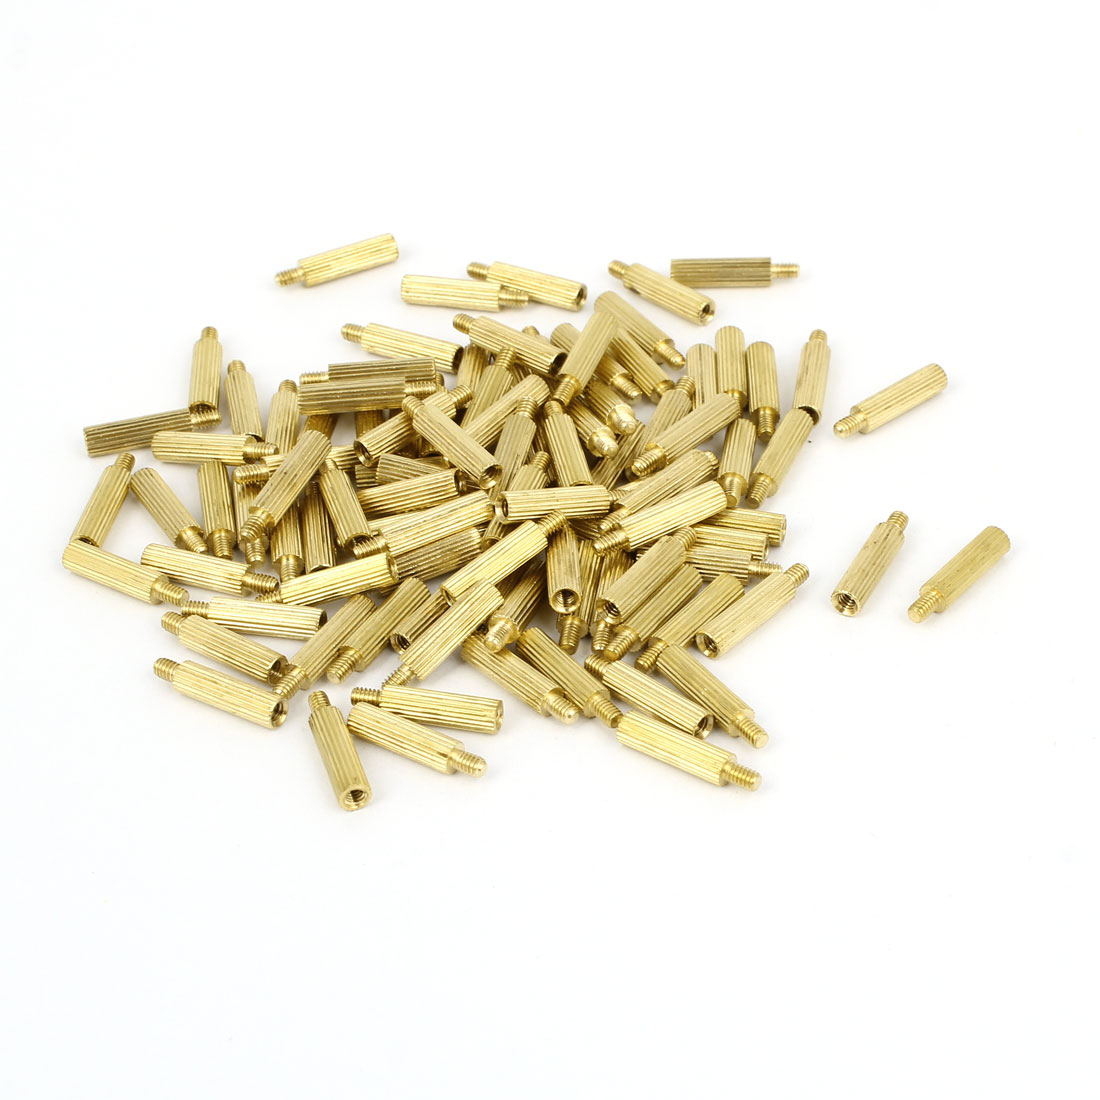 100 Pcs M2 Female Thread Cylindrical Brass Stand-off Support M2x11mm